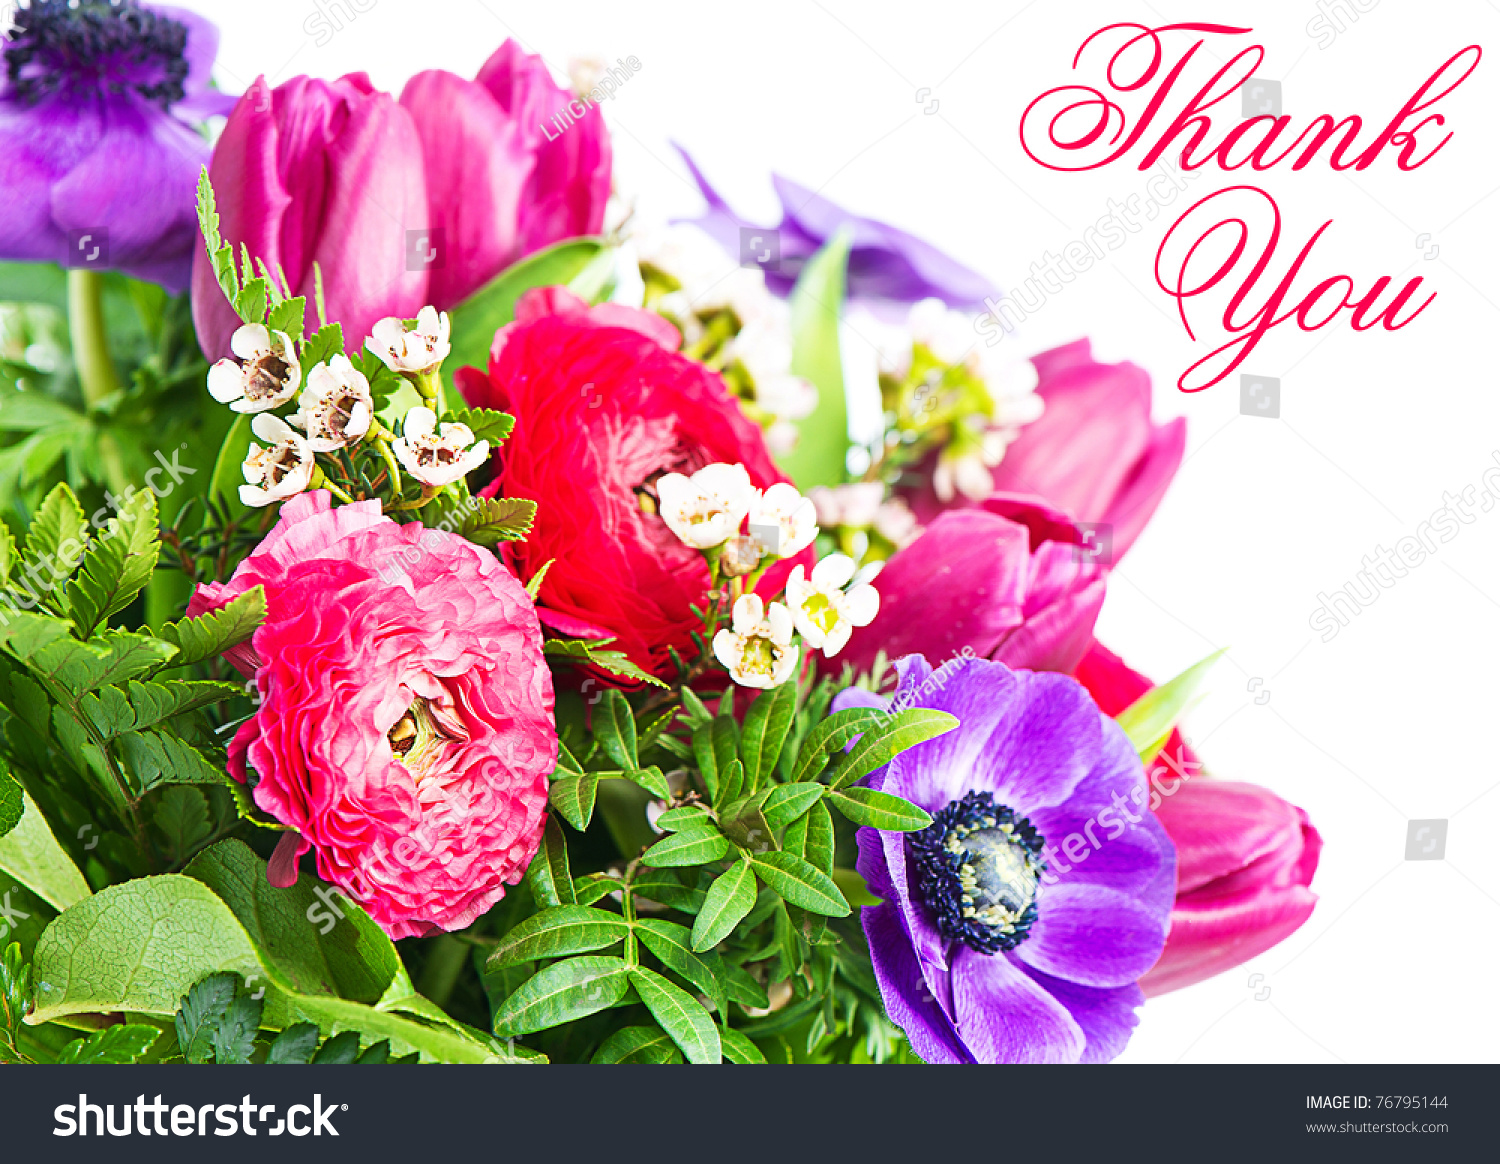 Thank you colorful flowers bouquet card stock photo edit now thank you colorful flowers bouquet card concept izmirmasajfo